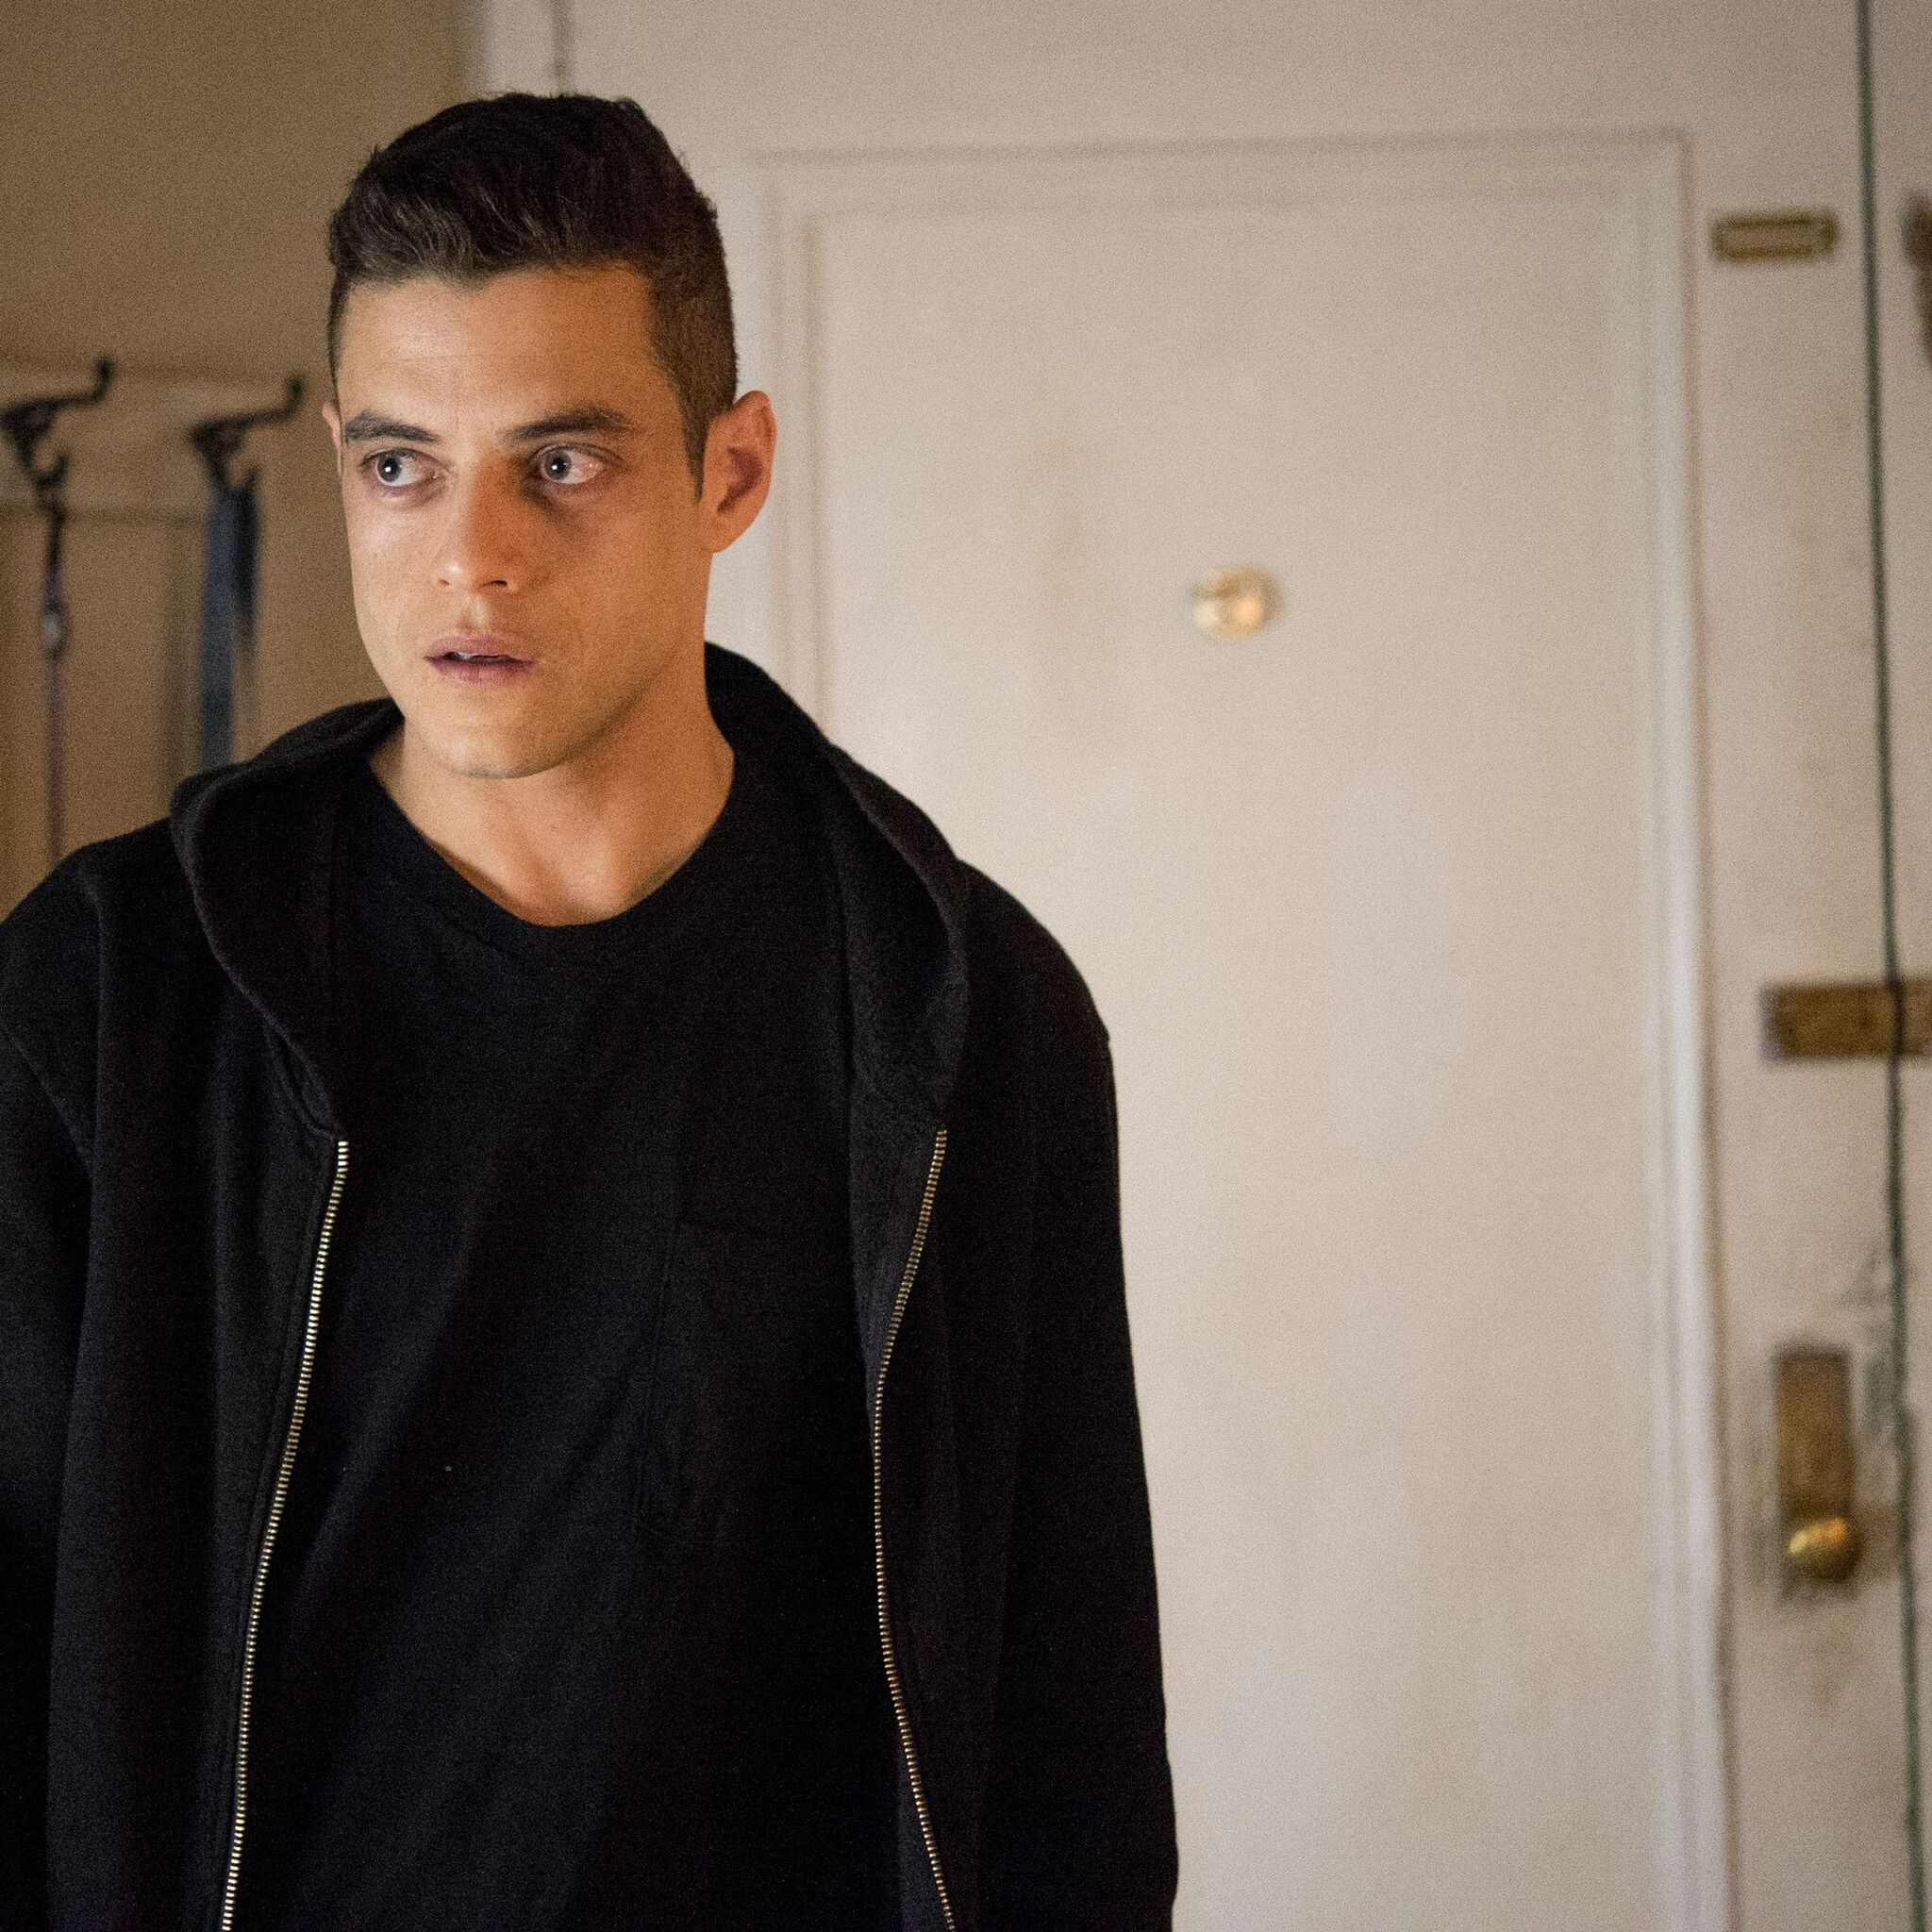 rami-malek-mr-robot-season-3-hs.jpg